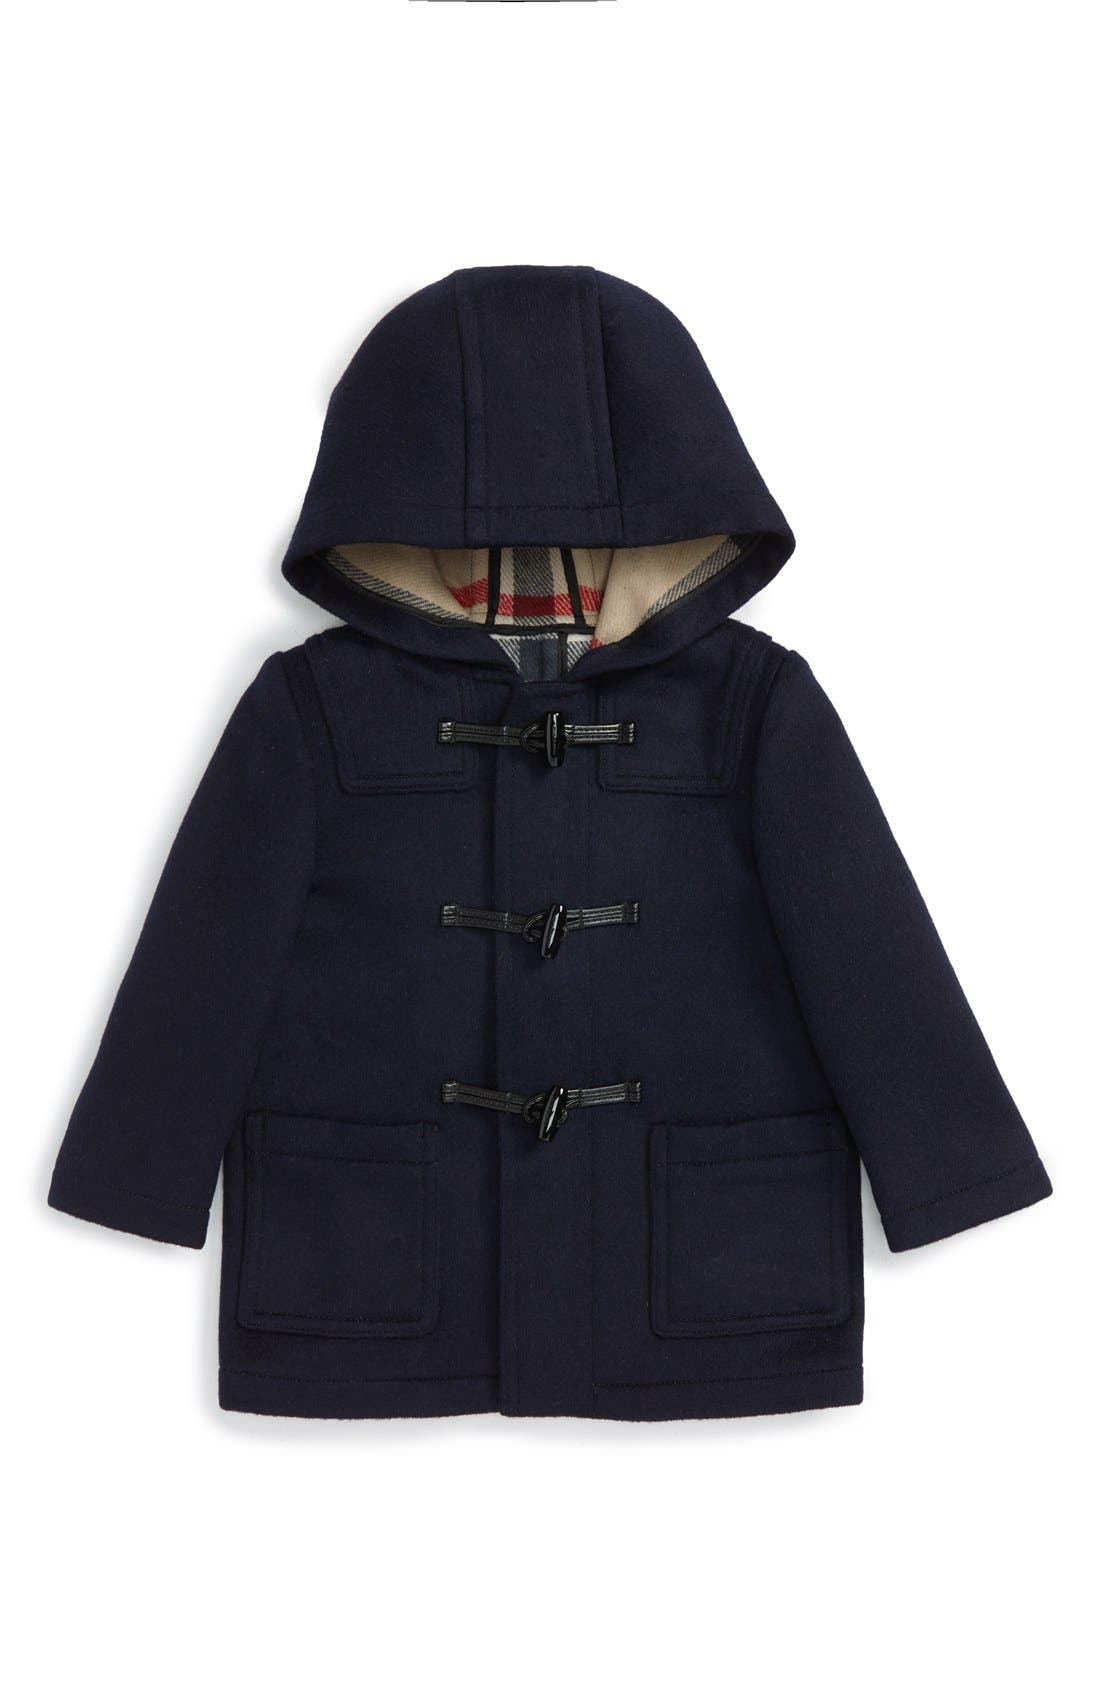 'Brogan' Hooded Wool Toggle Coat,                         Main,                         color, Dark Indigo